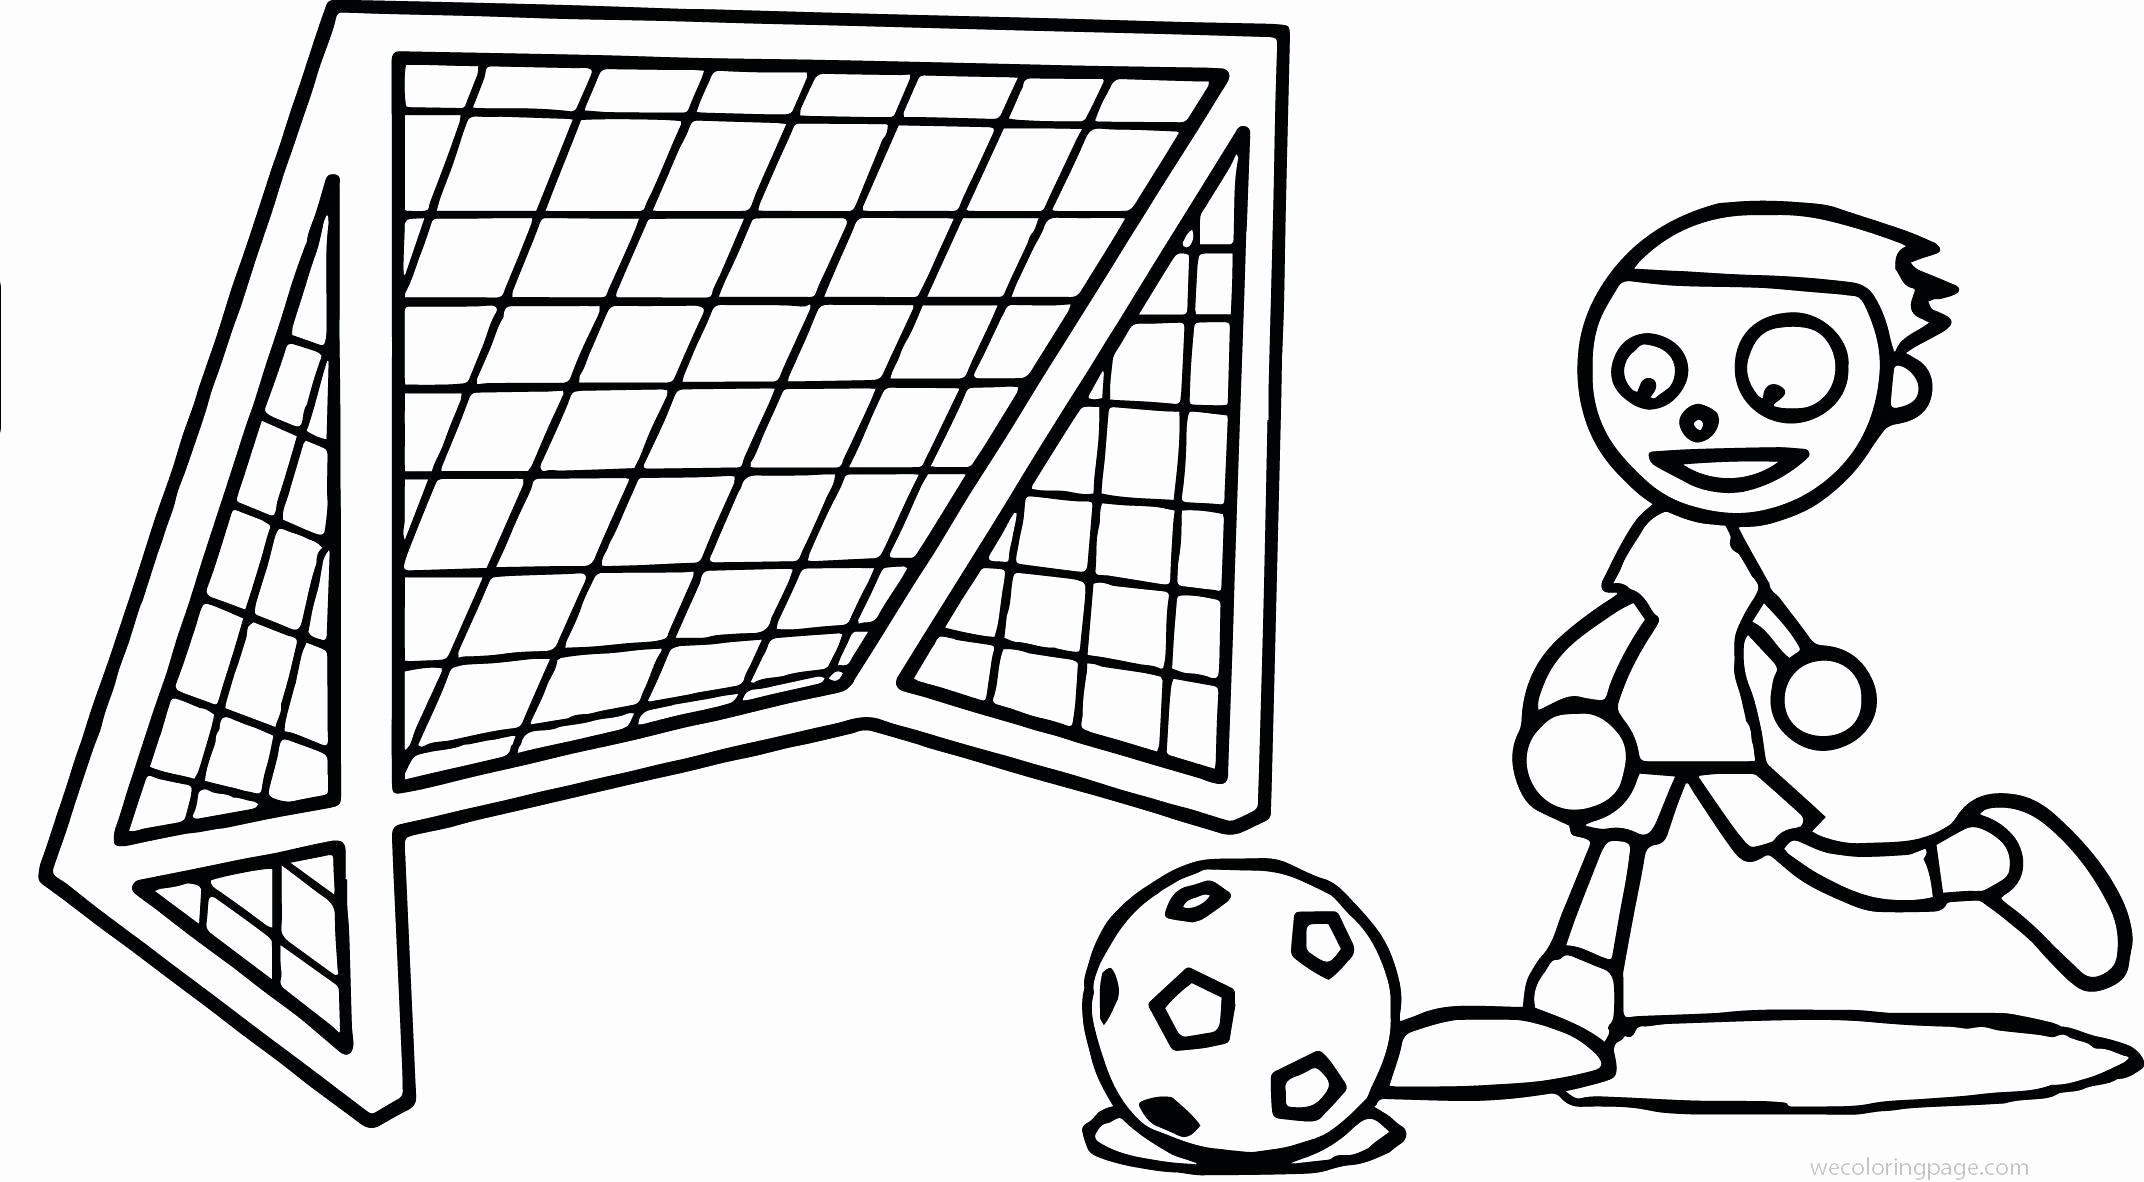 2144x1182 Atlanta Falcons Coloring Pages Coloring Page